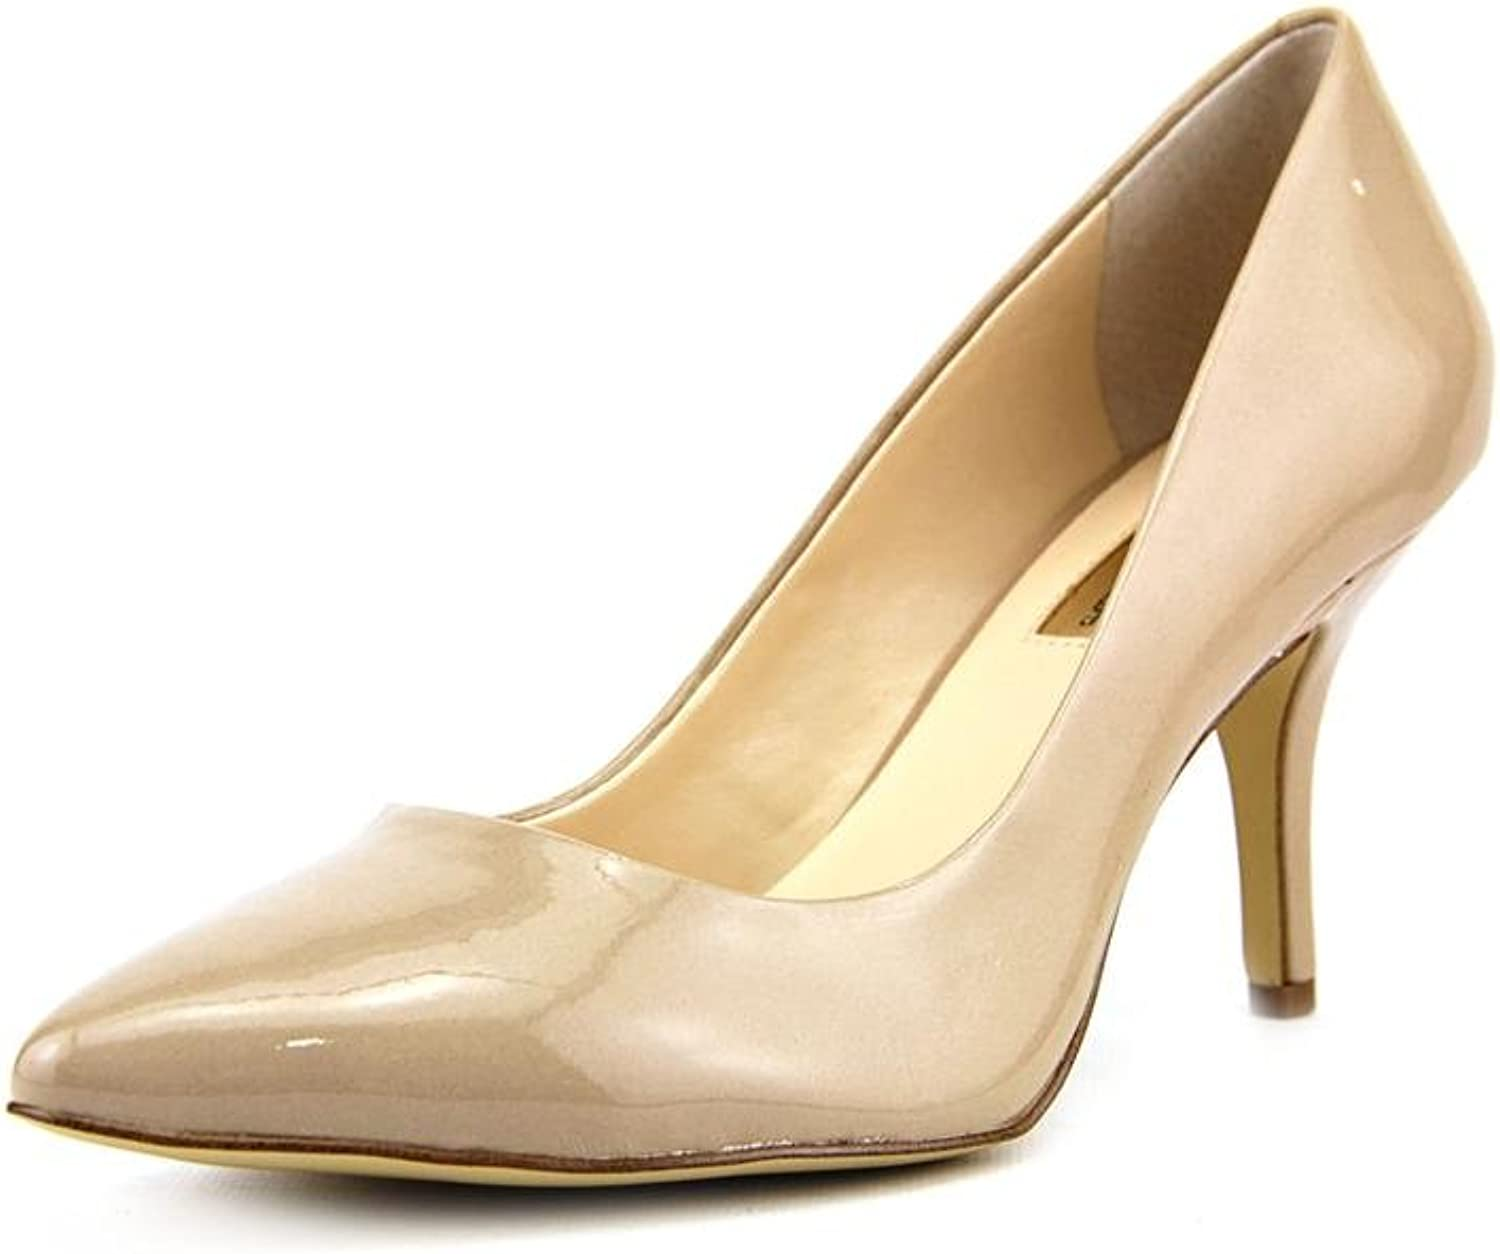 INC International Concepts Womens Zitah Leather Pointed Toe, Oatmeal, Size 10.0